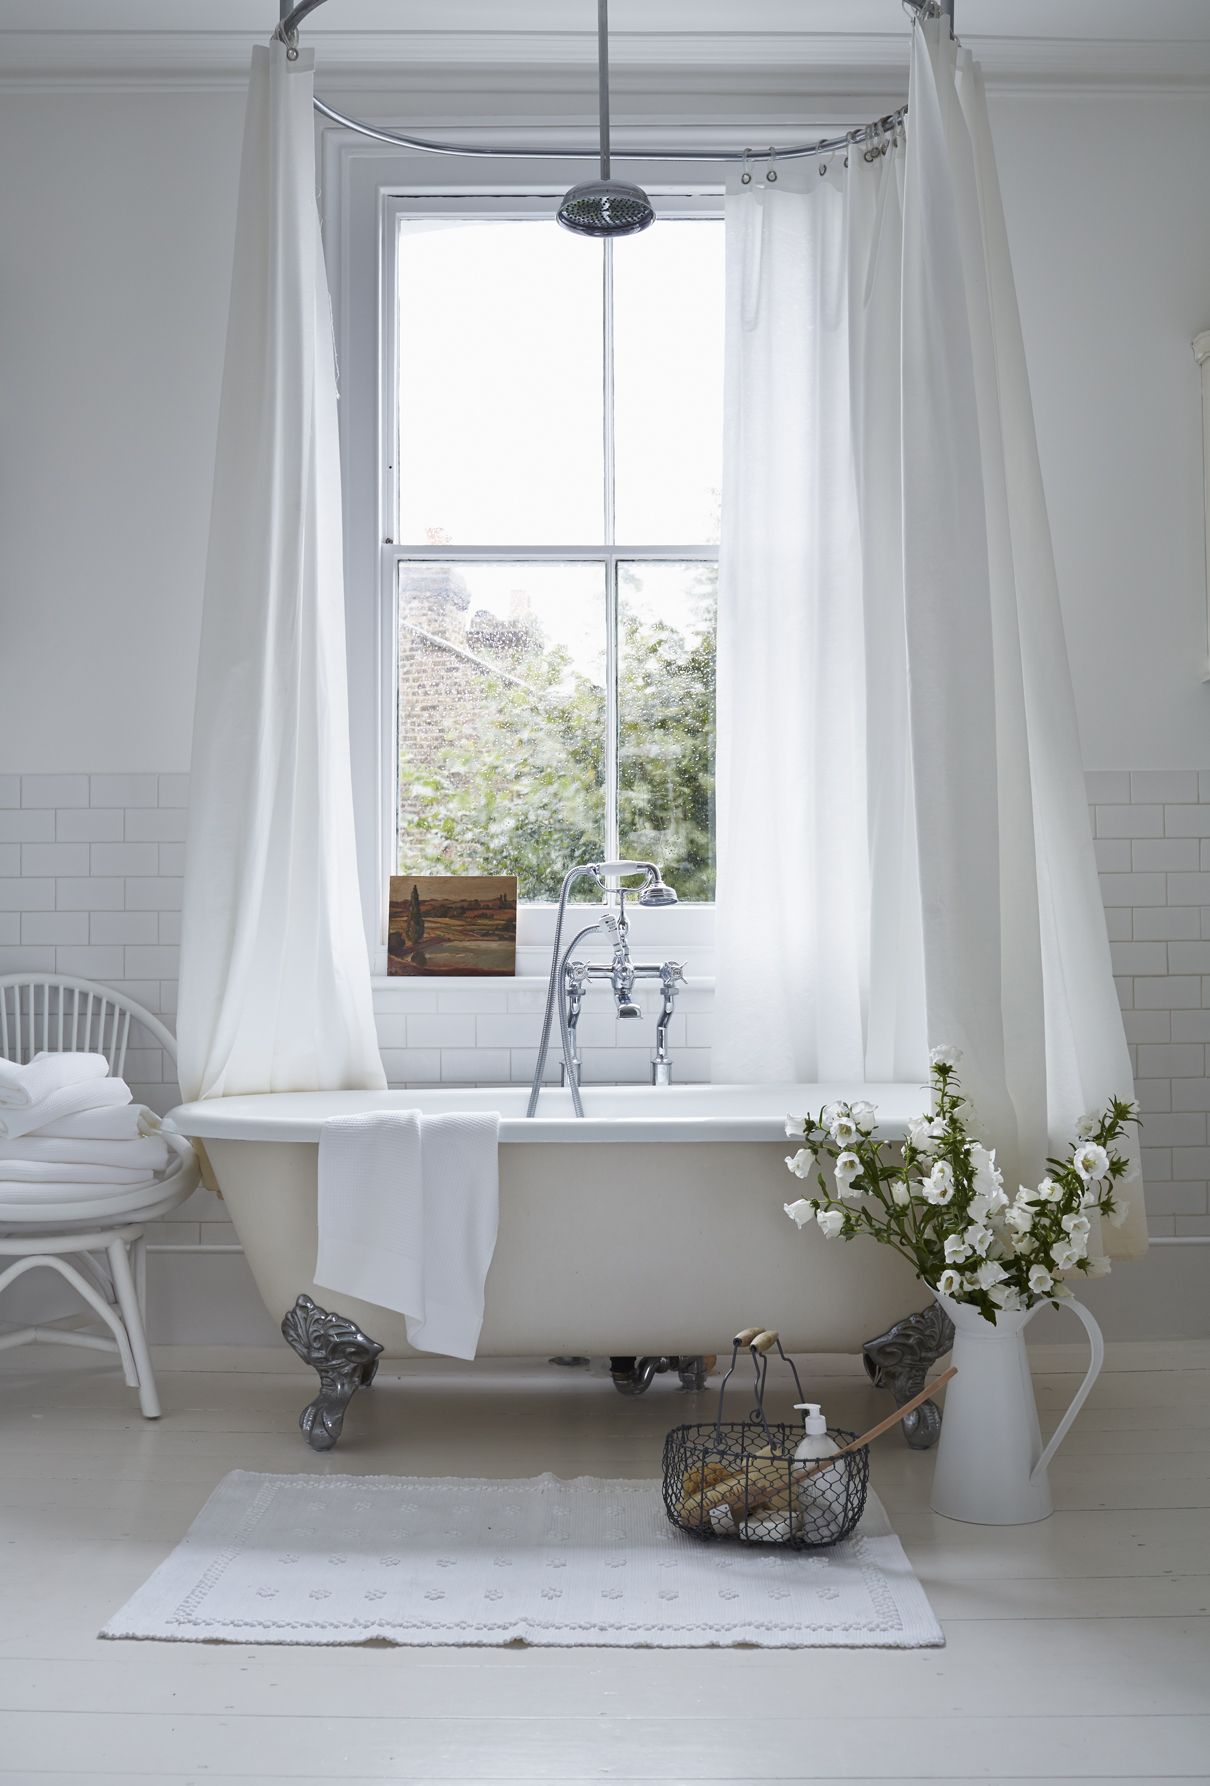 Love This Minus The Curtain Rail One Day I Will Have A Stand Alone Bath Love The Flowers In The Jug Too Home Chic Bathrooms Interior